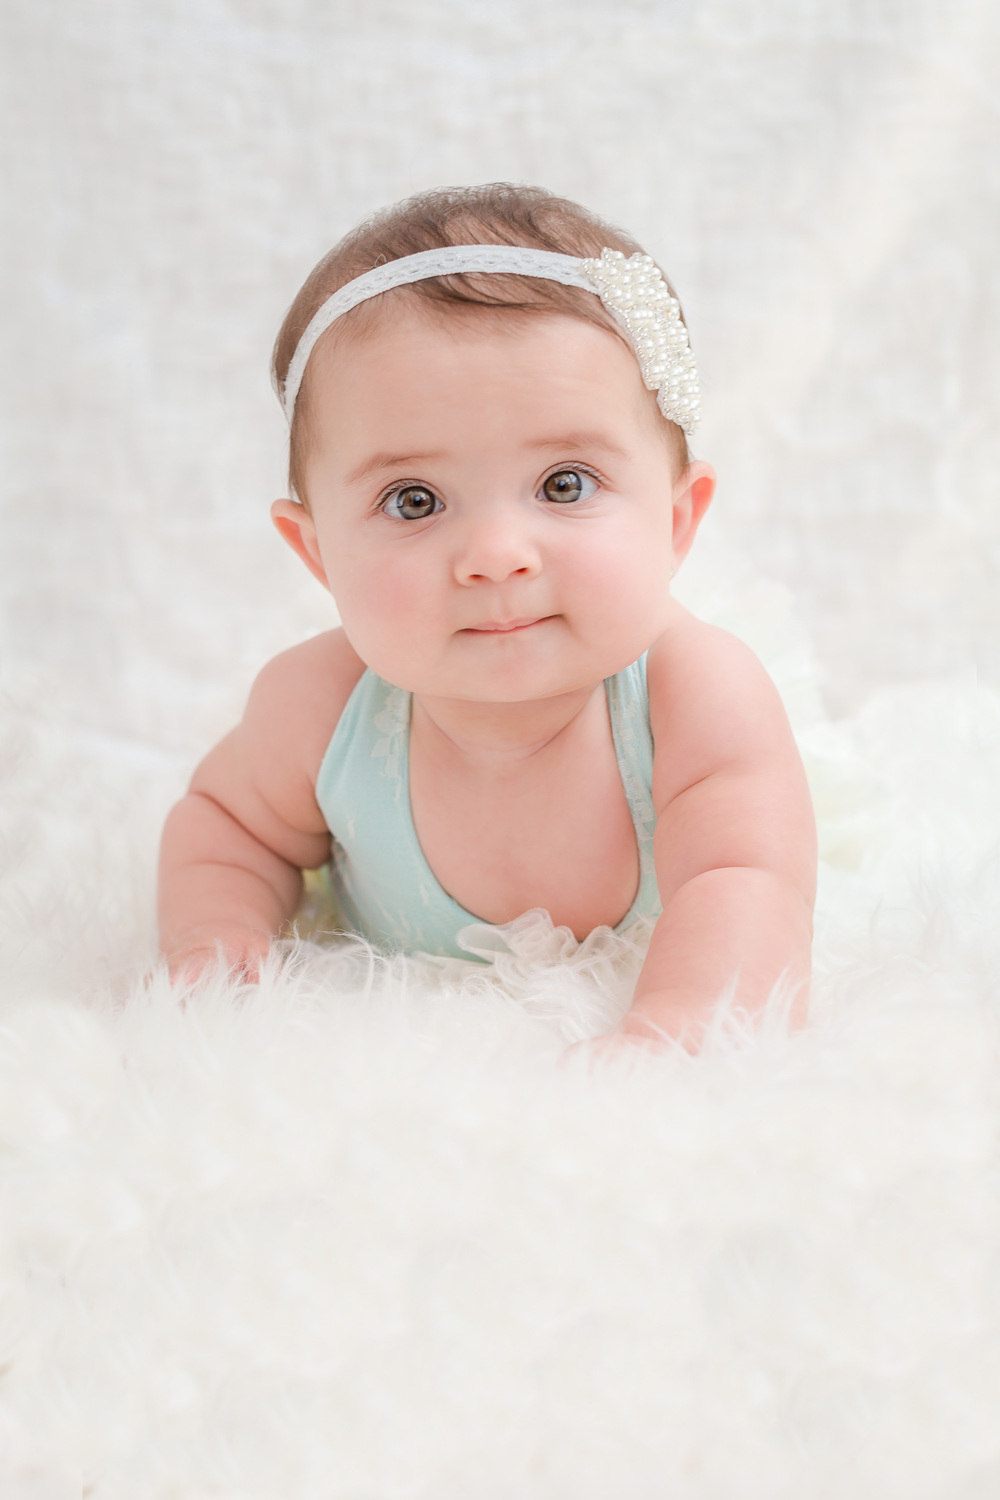 Bayonne_NJ_6_Months_Infant_Photoshoot_ (3).jpg